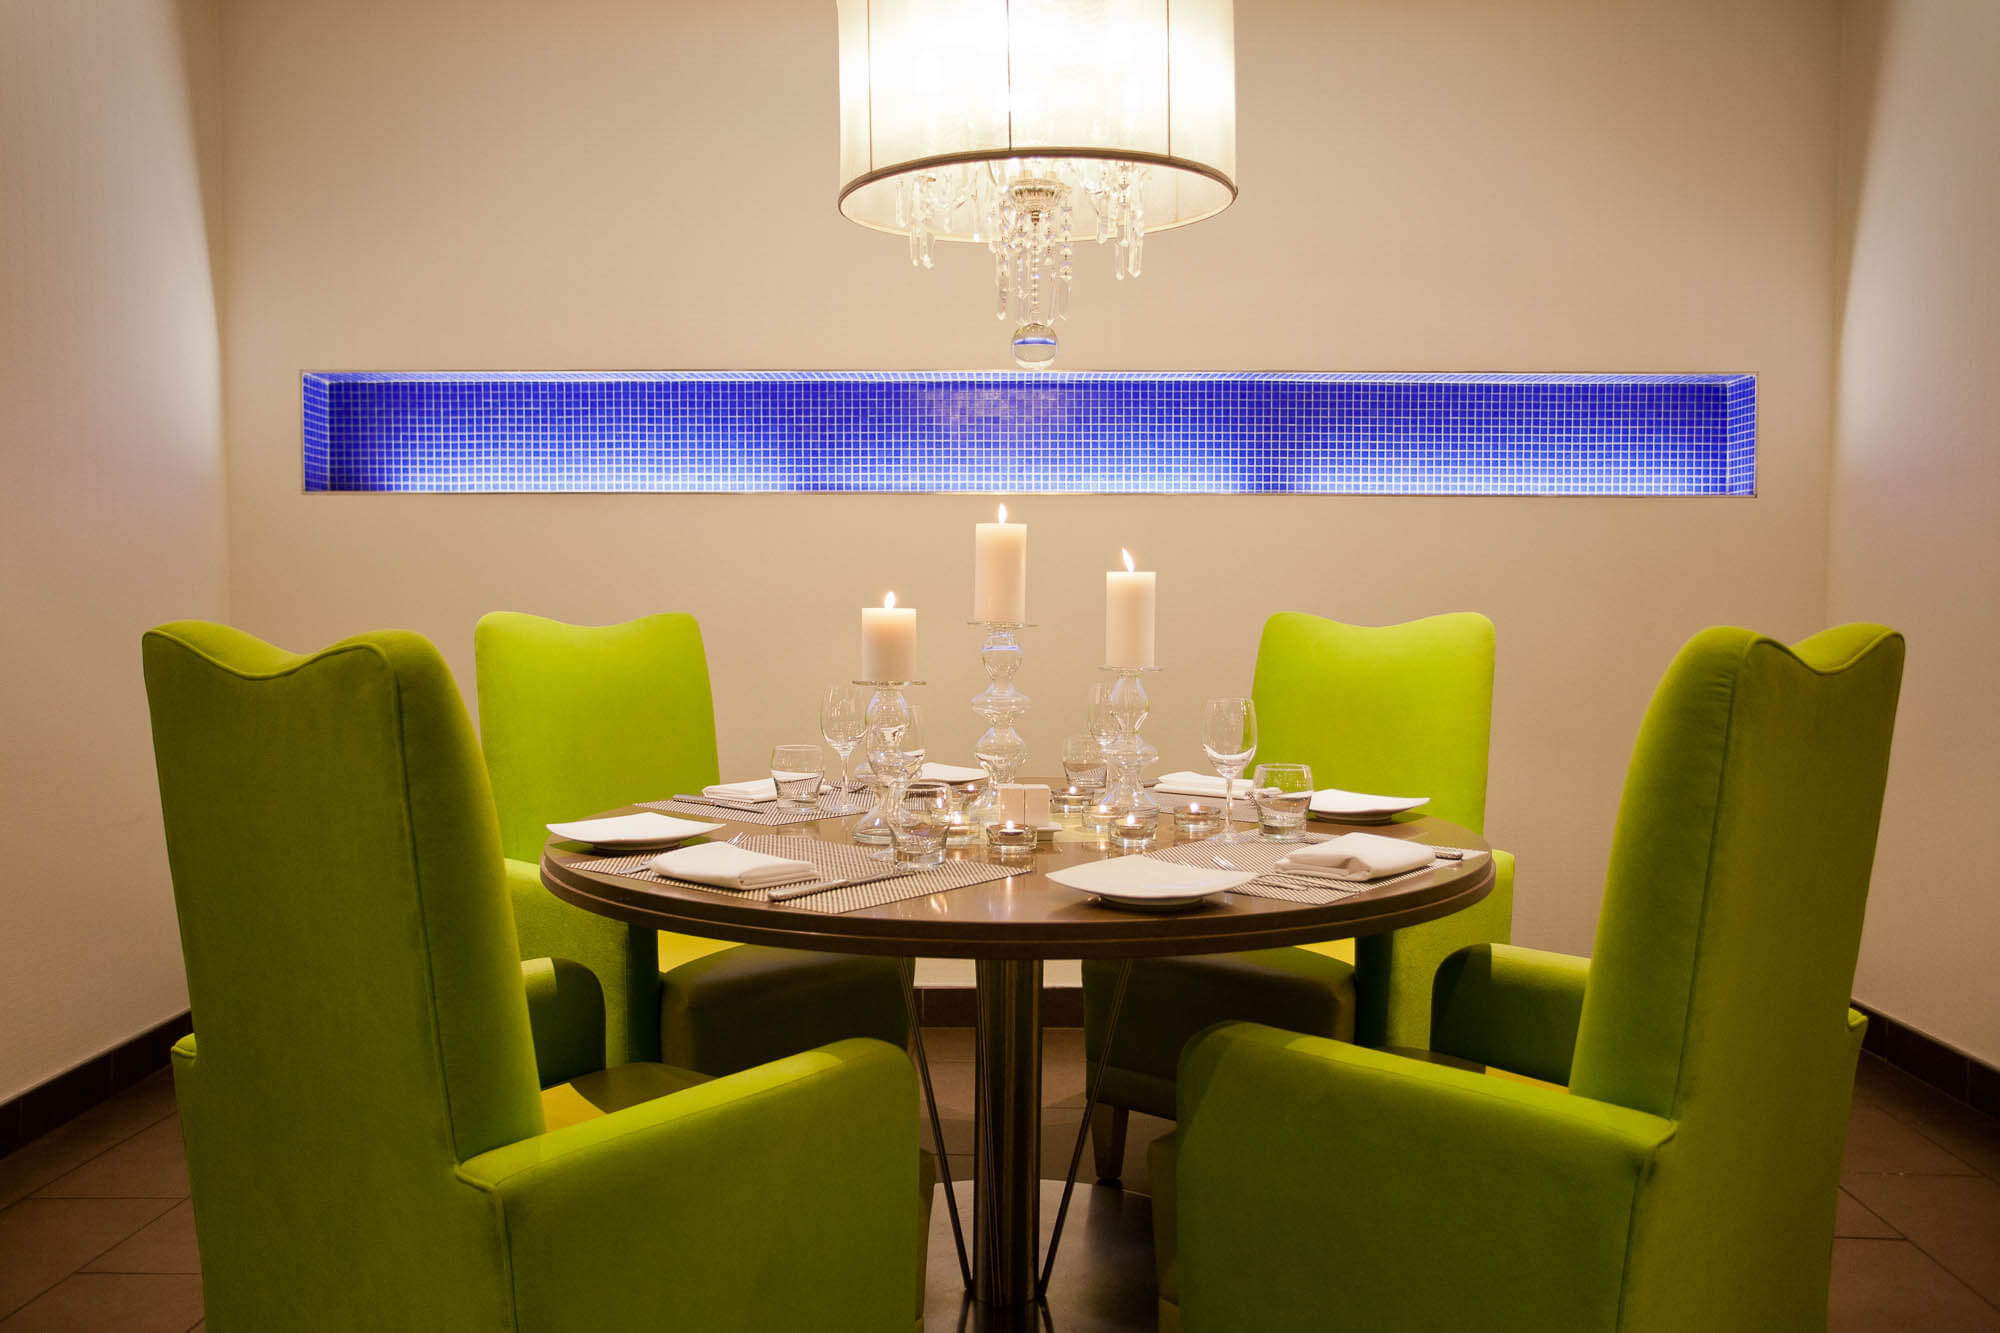 Table set for 4 with green lounge chairs